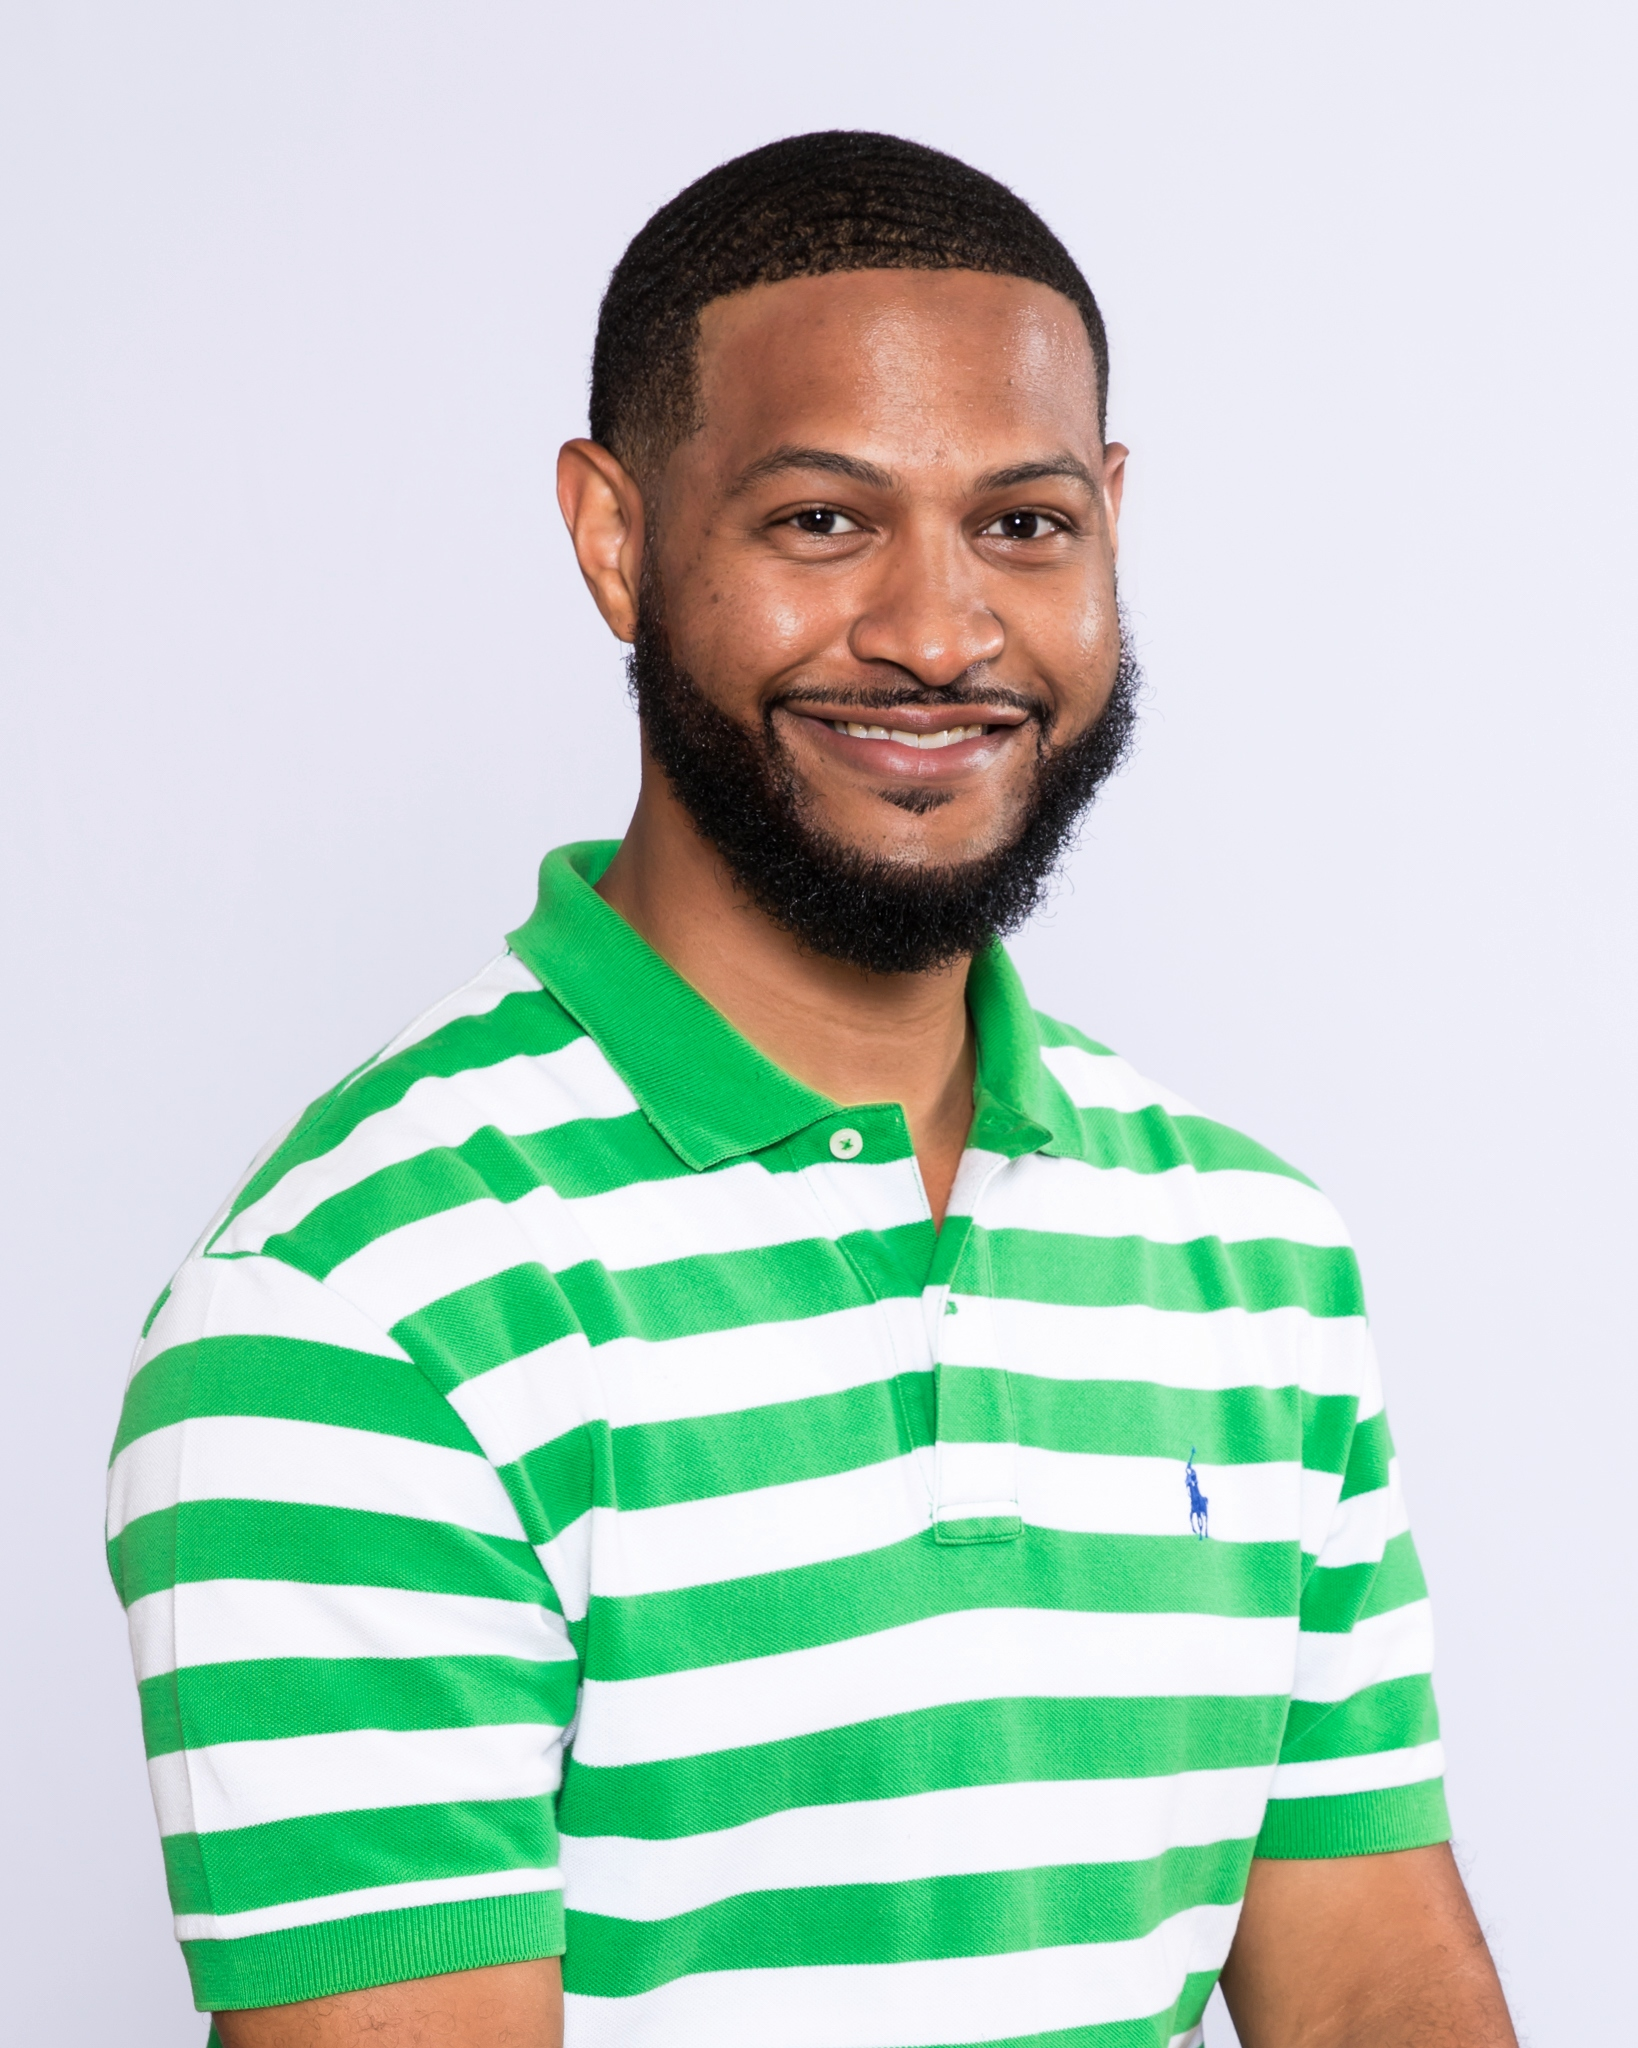 Physical Education Teacher - Rashan Steward grew up on the south side of Chicago where he attended St. John De La Salle Elementary school until 7th grade, but graduated from Canter Middle School and went on to attend Seton Academy High school in South Holland Illinois. After being a student athlete and successfully completing four years of high school, he moved to Atlanta Georgia to attend Morehouse College. At Morehouse, Rashan started out as a Business Management major, but after reassessing his career goals he changed his major to Kinesiology, Sports Studies and Physical Education to follow his heart's desire to give back and positively impact the lives of youth. Coach Shan is a Physical Education teacher, Certified USA Swimming Coach and Triathlon coach.